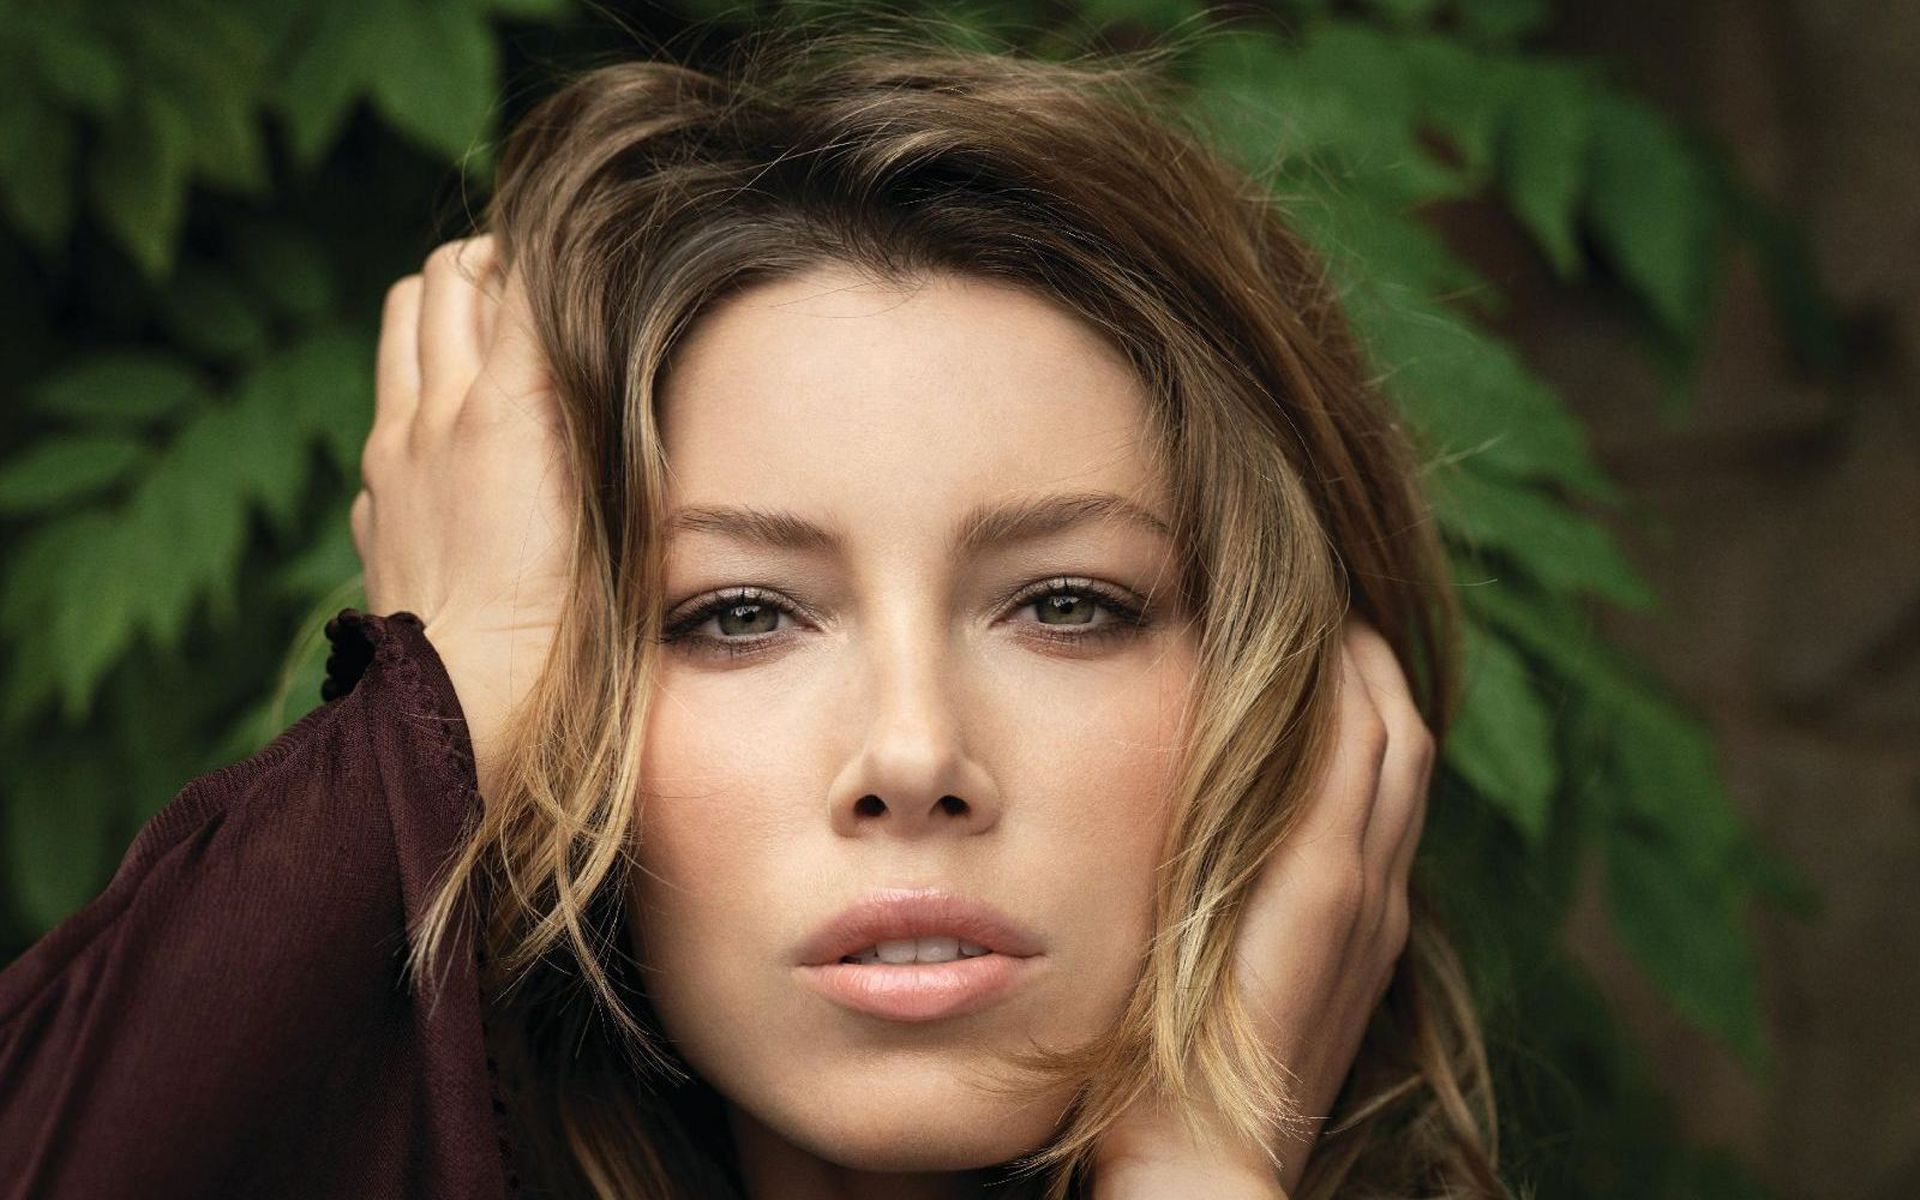 Jessica Biel Wallpapers Backgrounds джессика бил